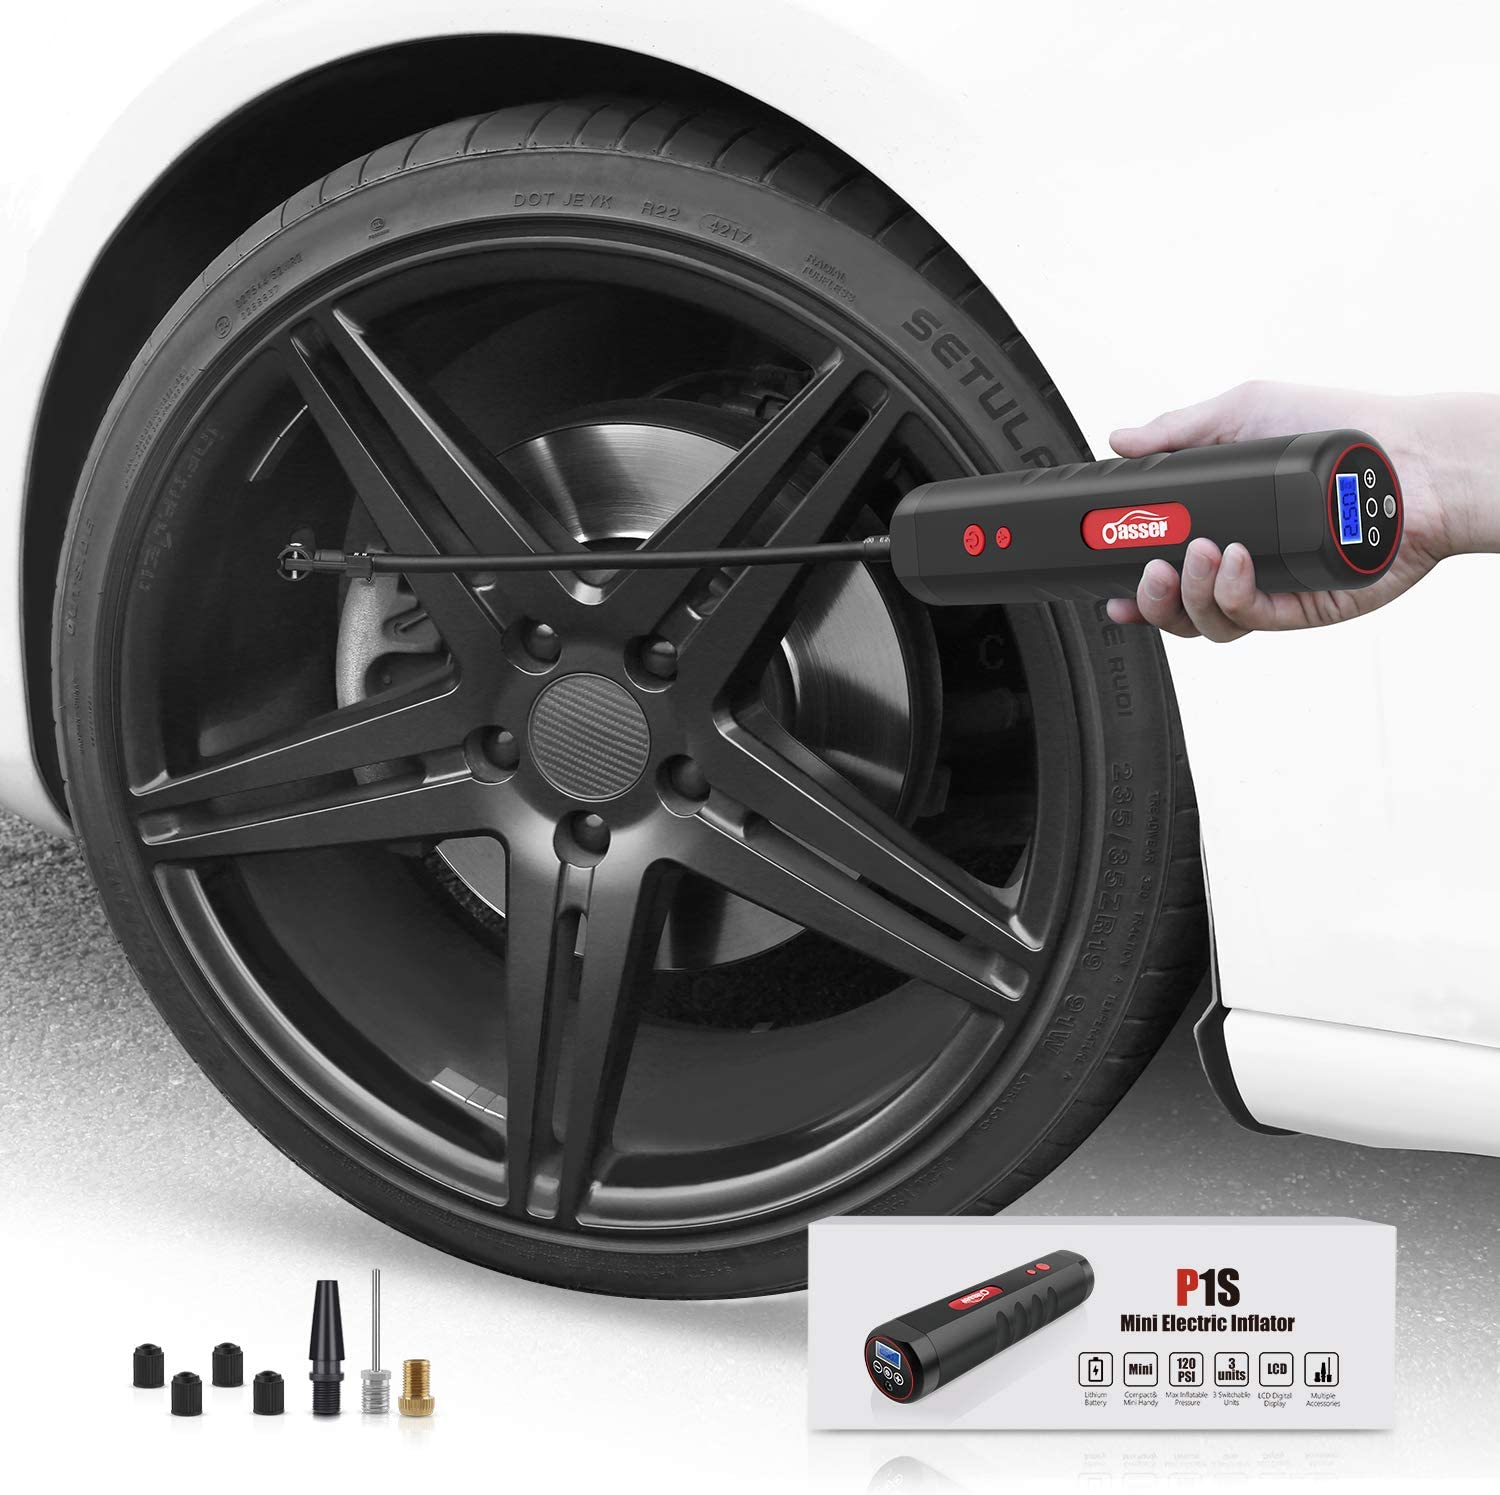 Oasser Air Compressor Portable Mini Air Inflator Hand Held Tire Pump 2000mAh with Digital LCD LED Light 12V AC DC Lithium Battery 120PSI 20Litres//Min for Car Bicycle Tires and Other Inflatables P1S